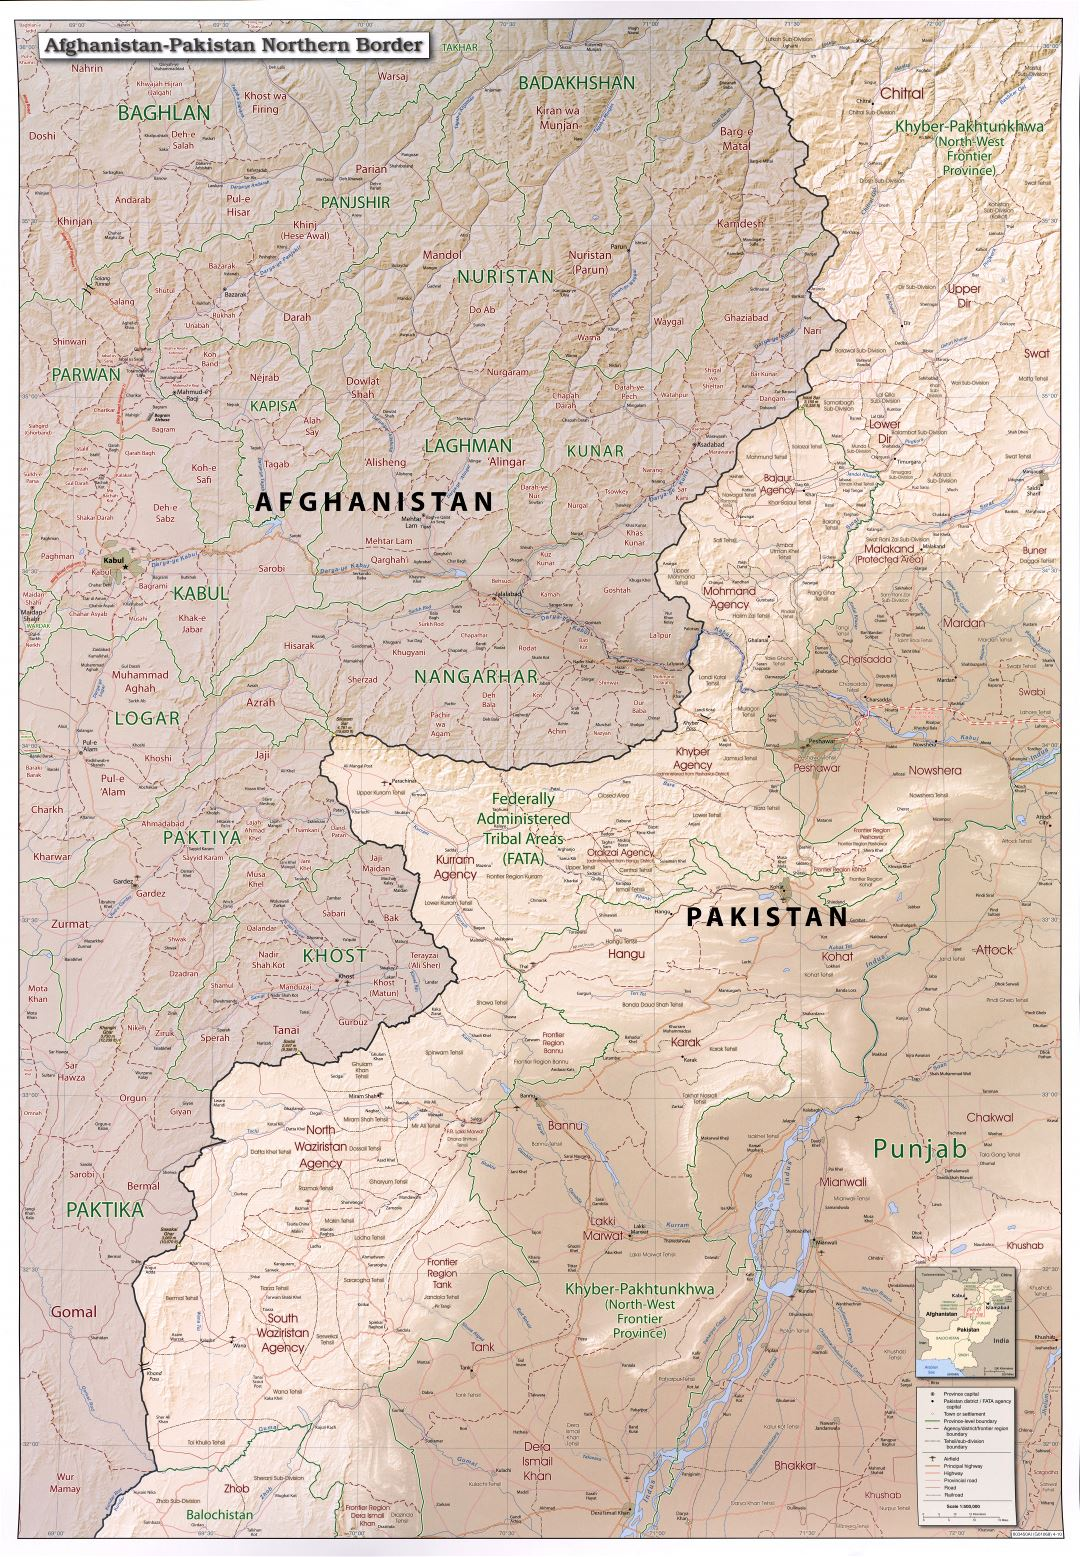 Large scale detailed Afghanistan - Pakistan northern border map with relief, administrative divisions, roads, railroads, airfields and all cities - 2010